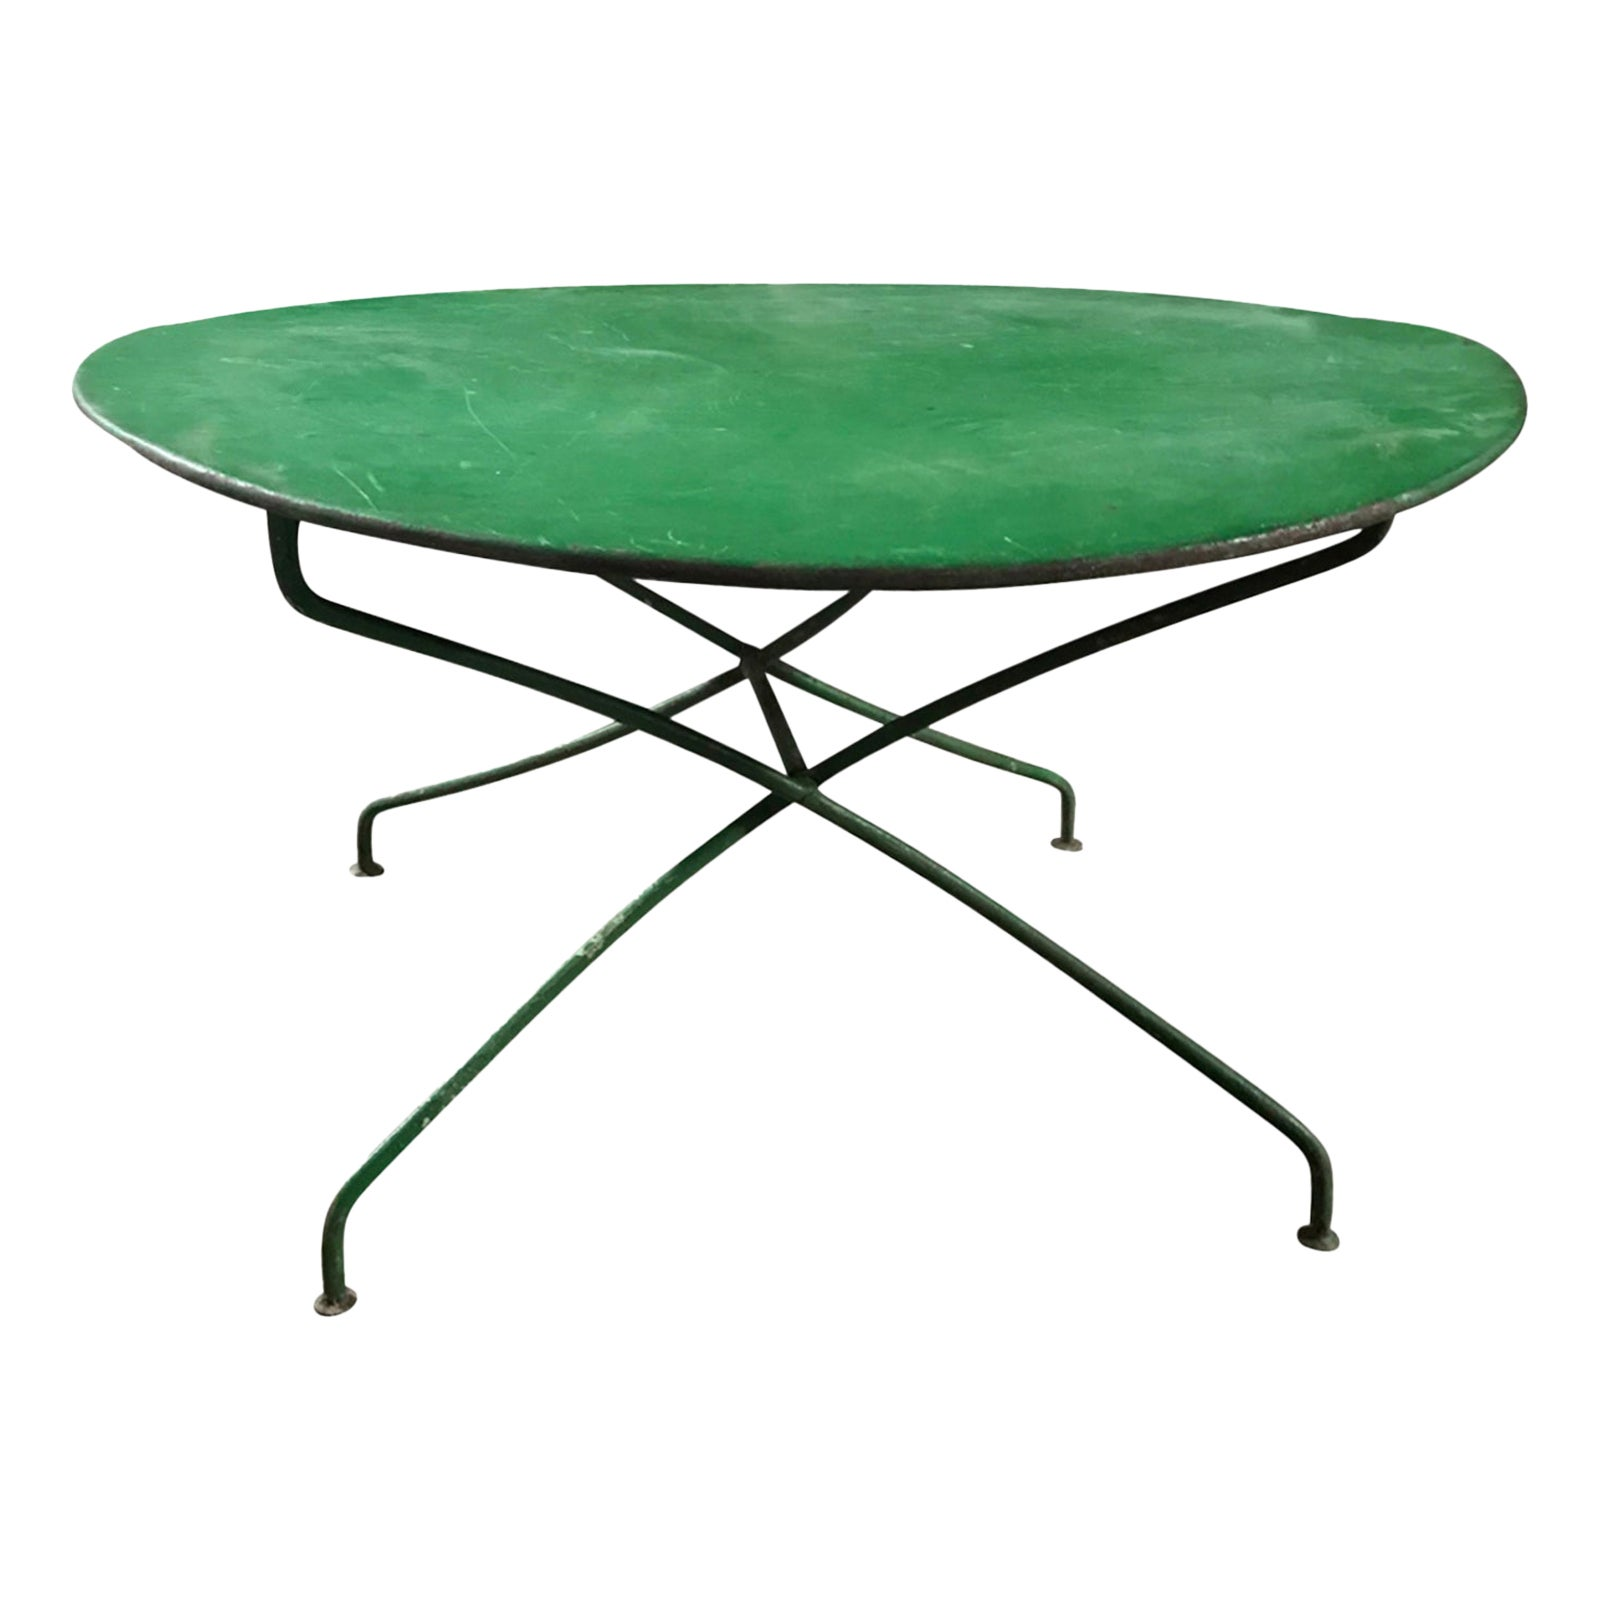 Early 20th Century Old French Iron Garden Table, Green